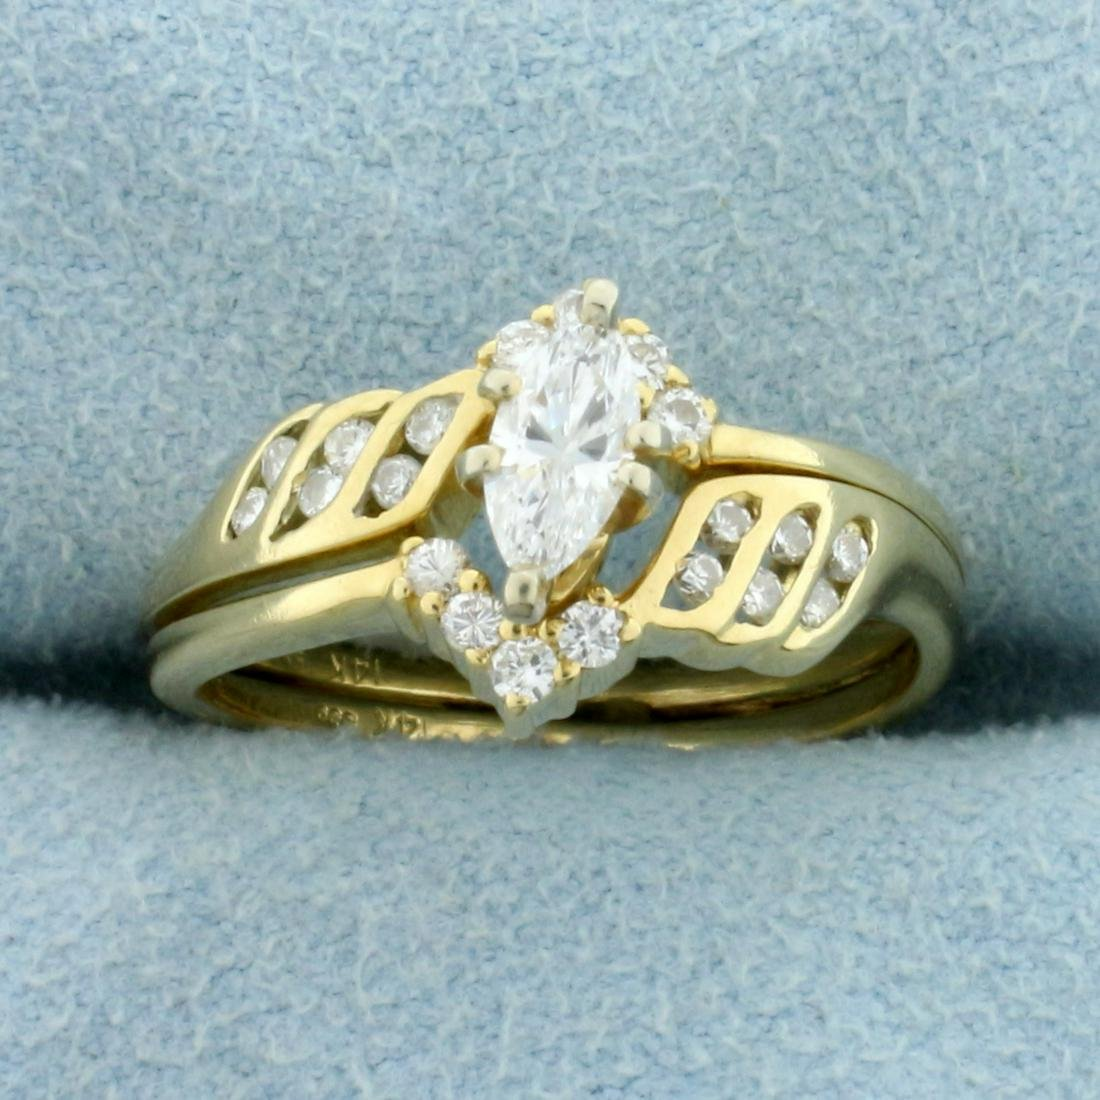 1/2ct TW Marquise Diamond Engagement Ring in 14K Yellow